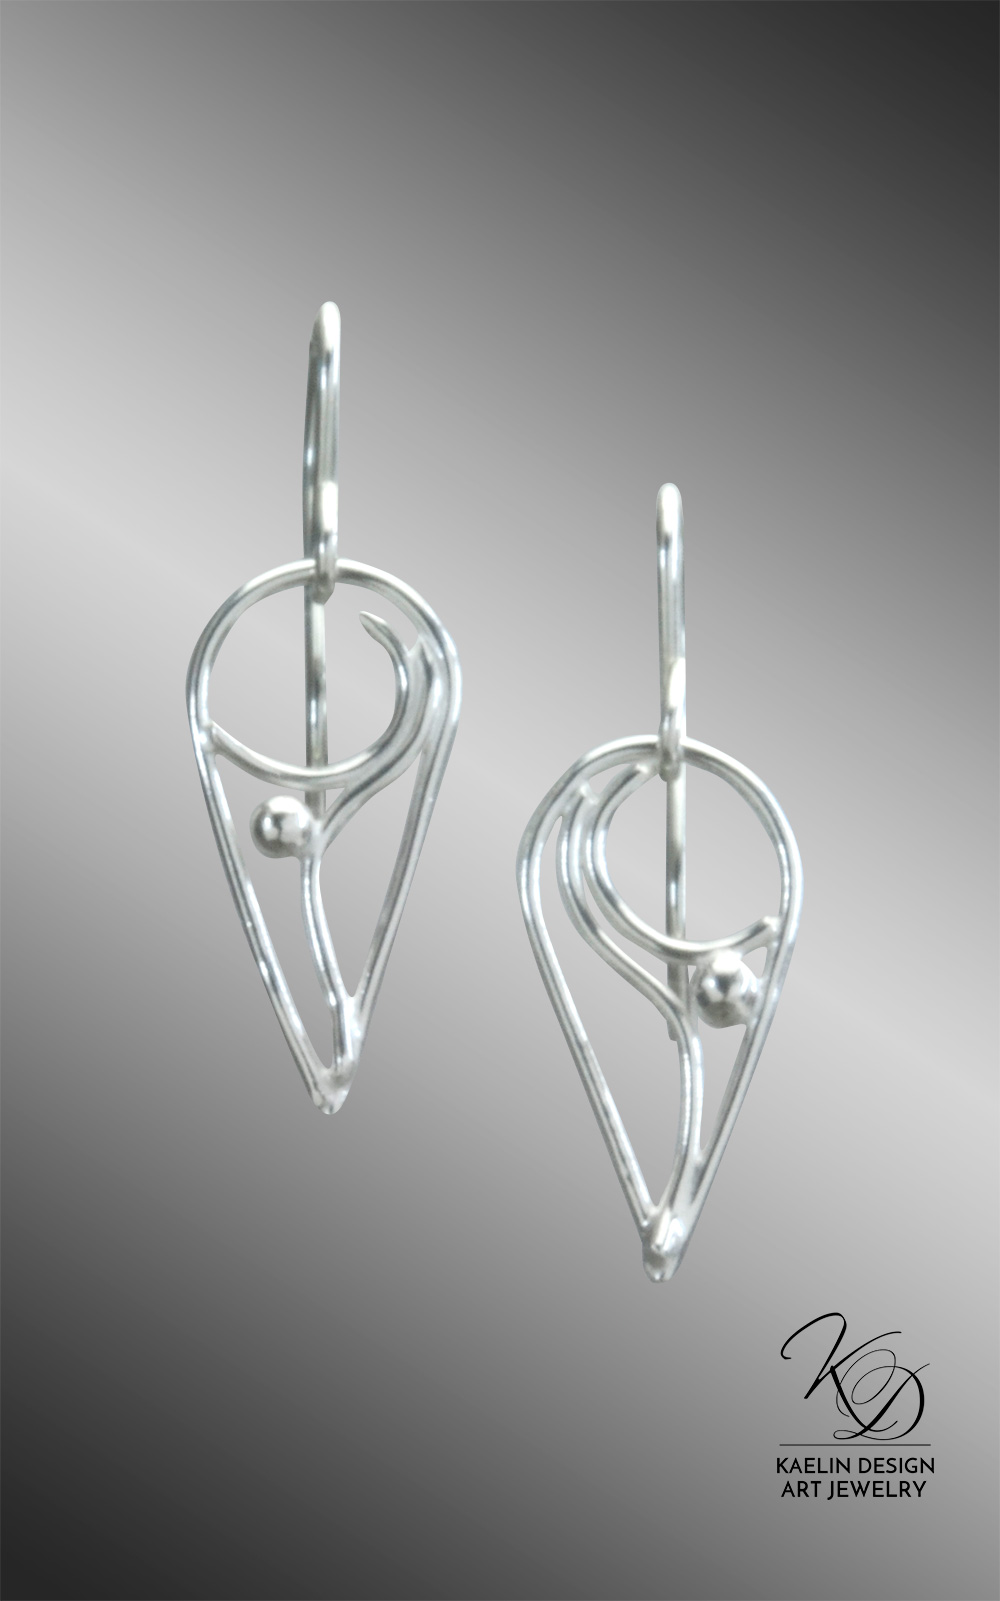 Anahita Sterling Silver Earrings Hand Forged by Kaelin Design Art Jewelry